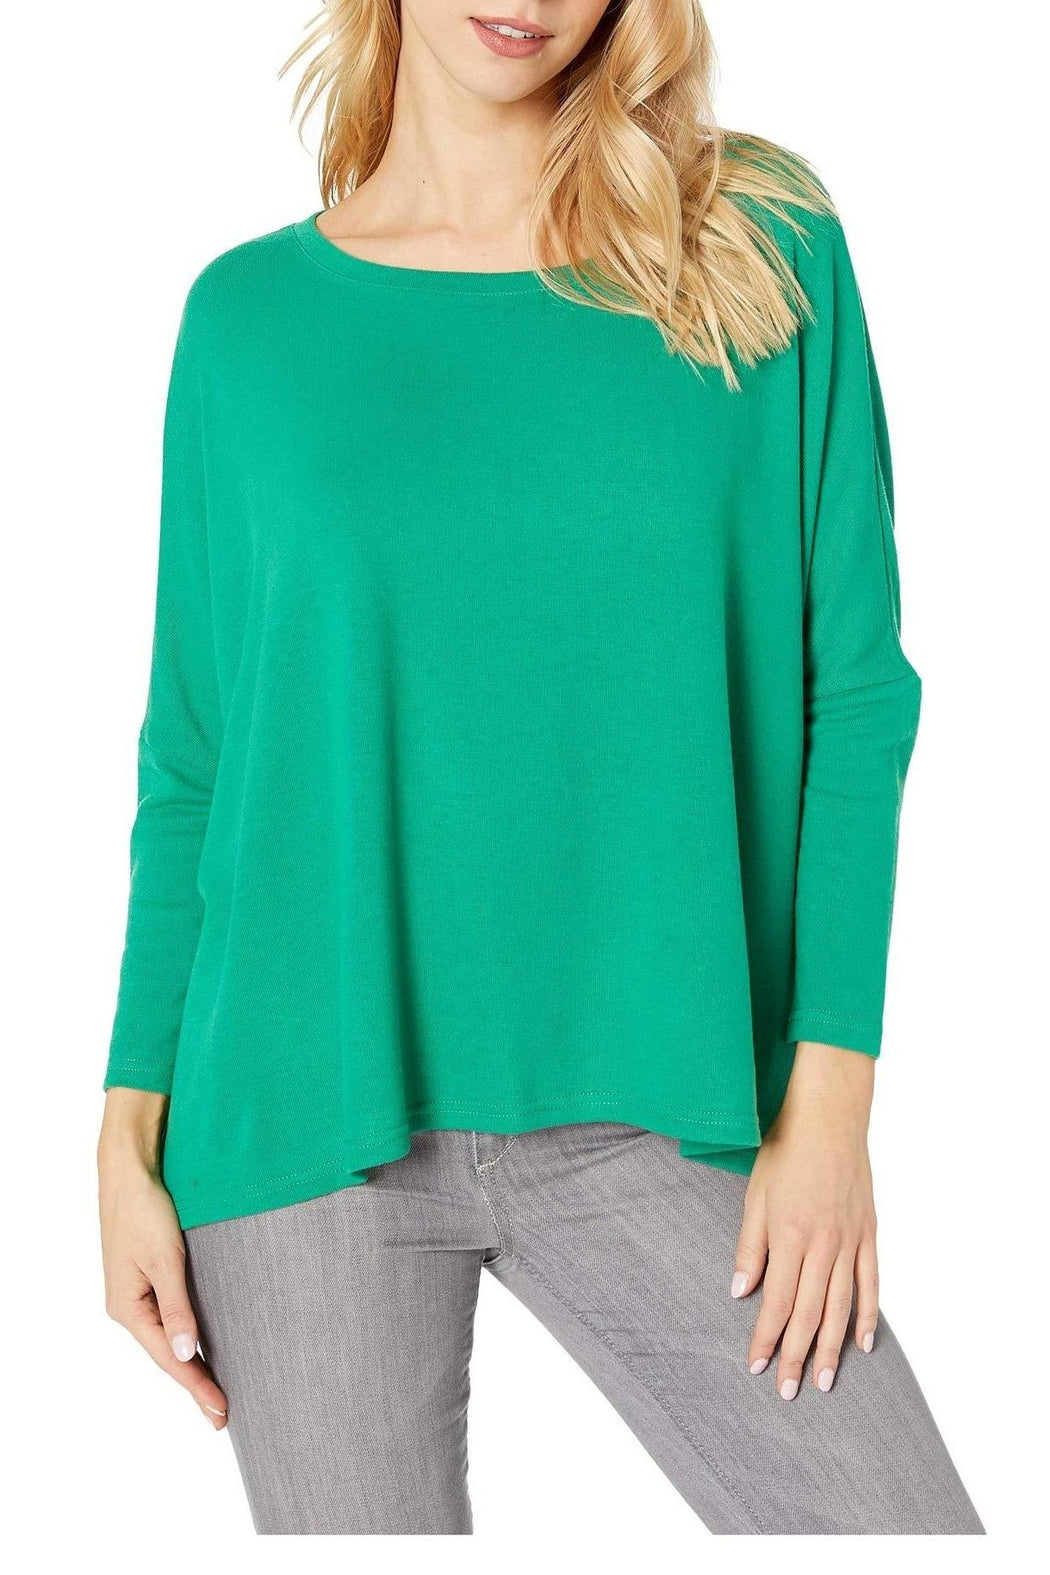 Cupcakes and Cashmere Ricky Oversized Top